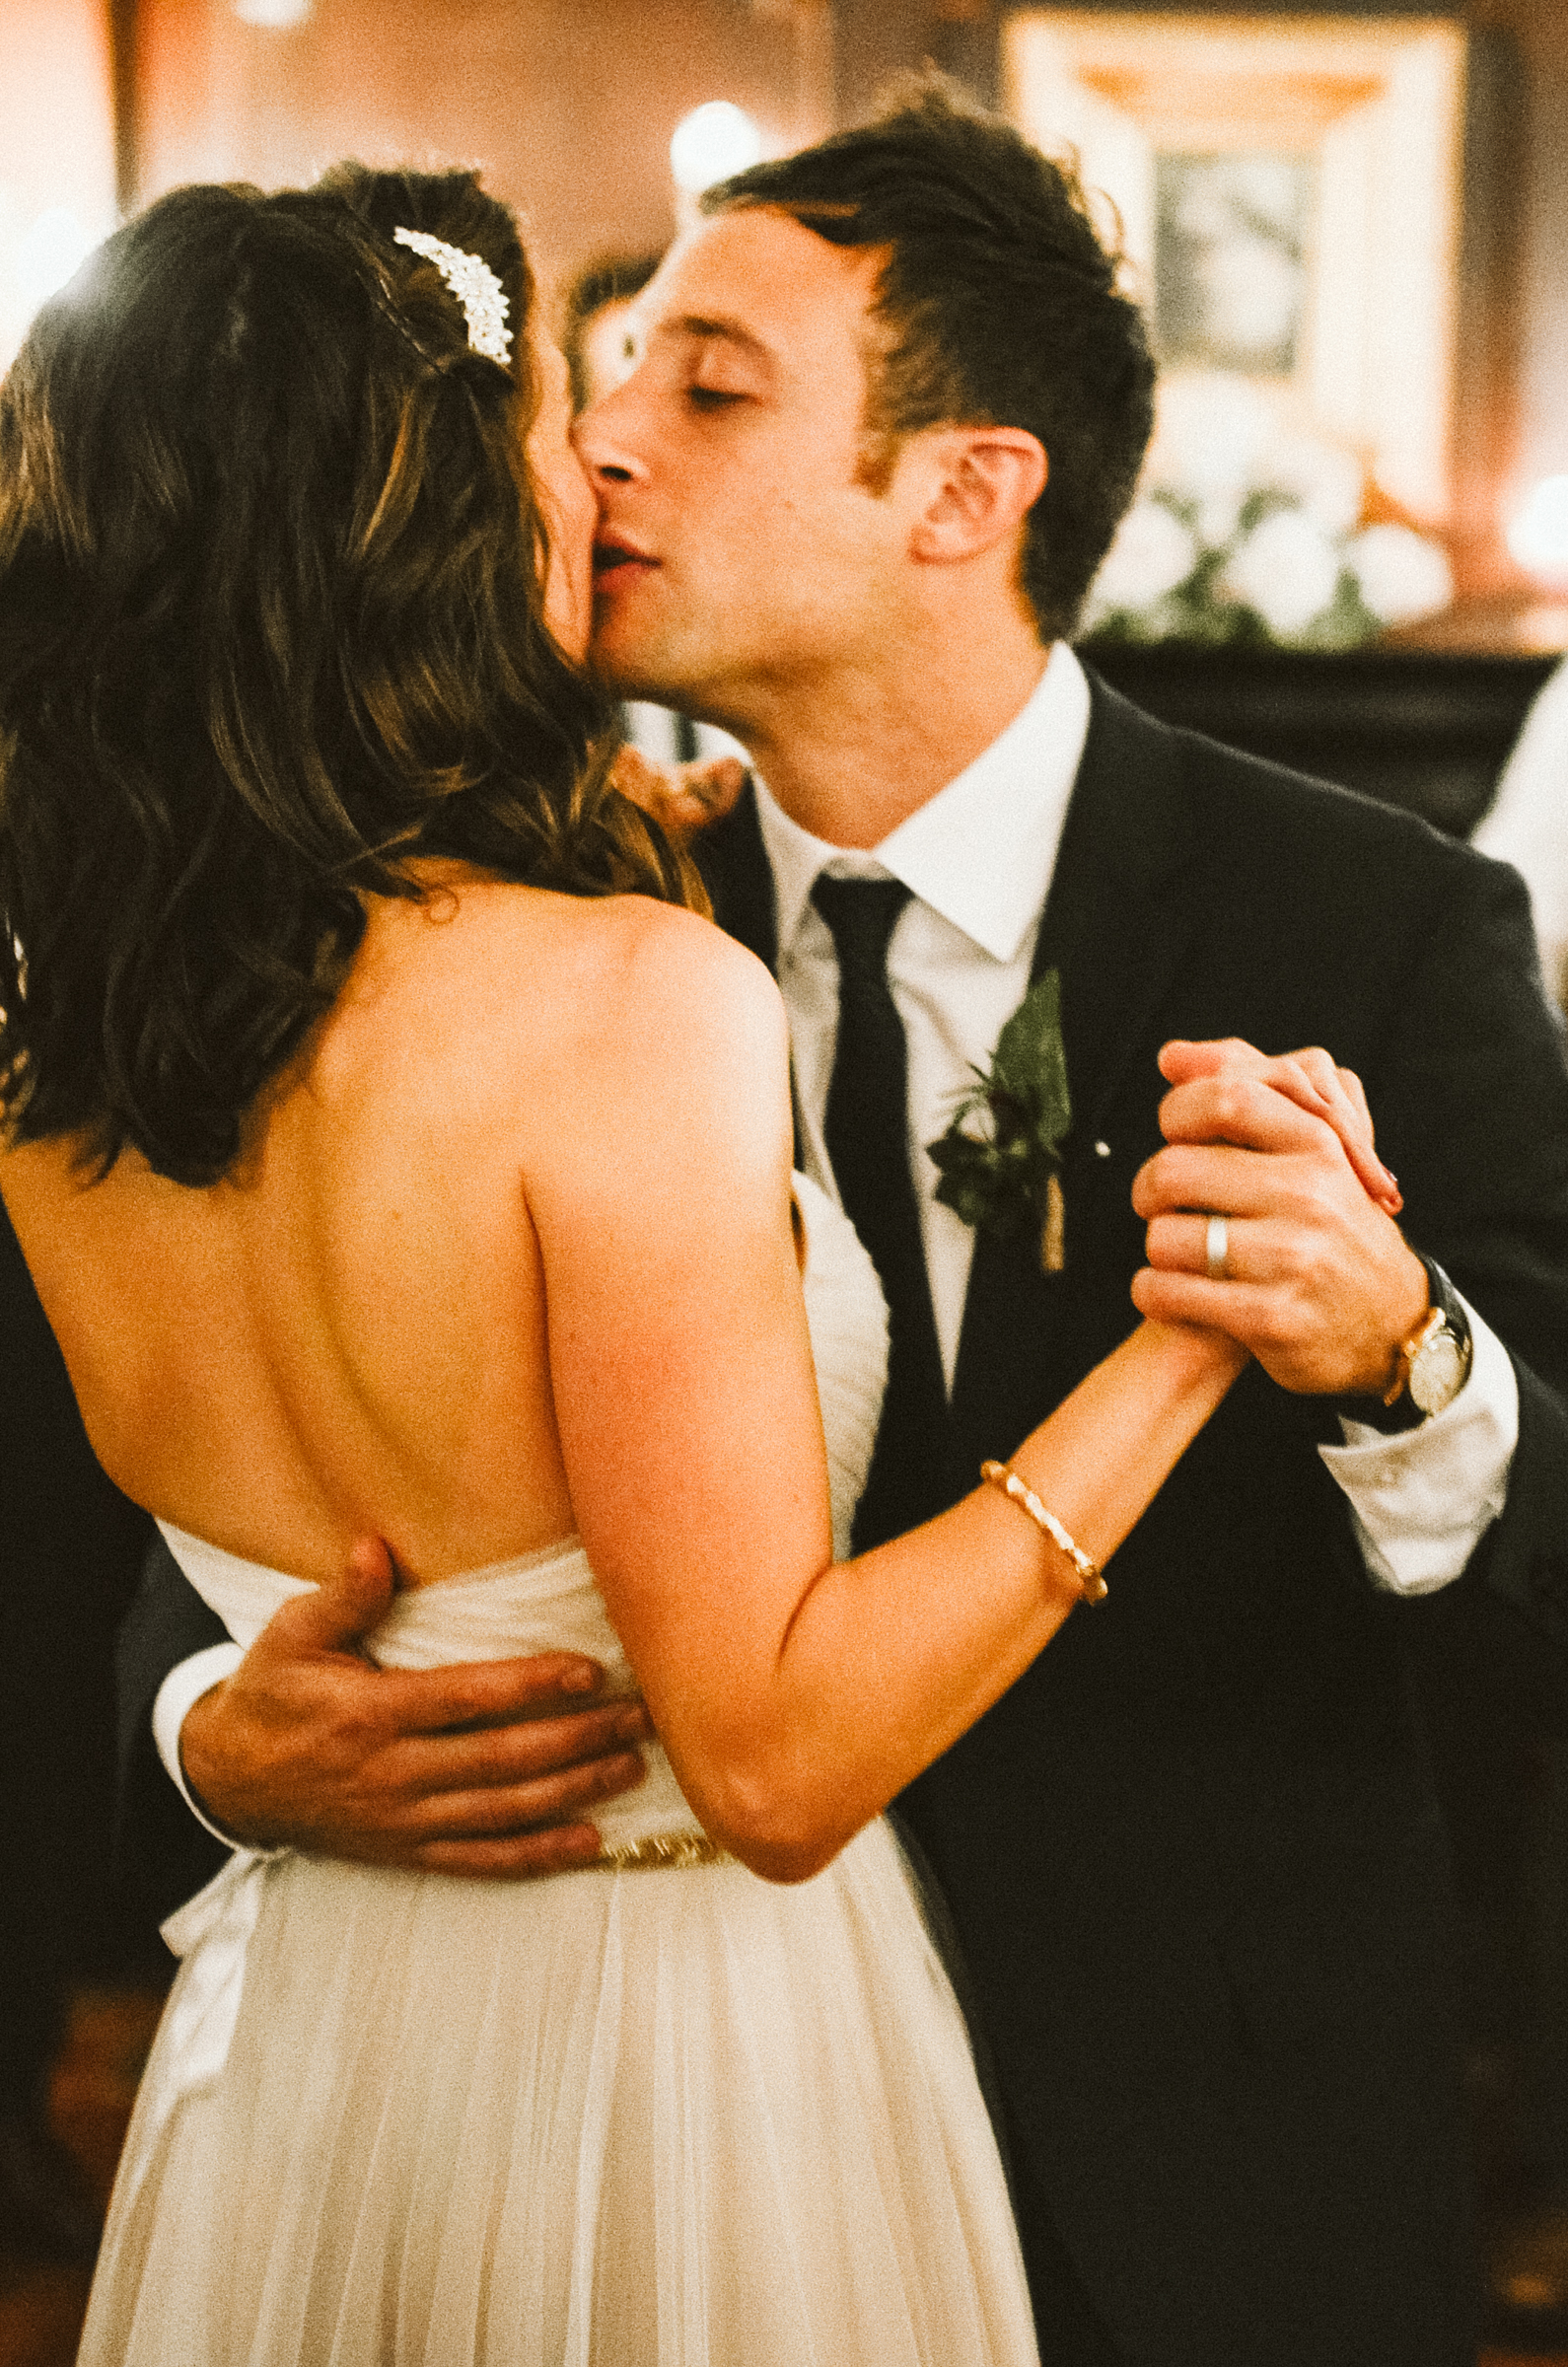 Jen and Drew's Wedding Edited 2019 web-95.jpg